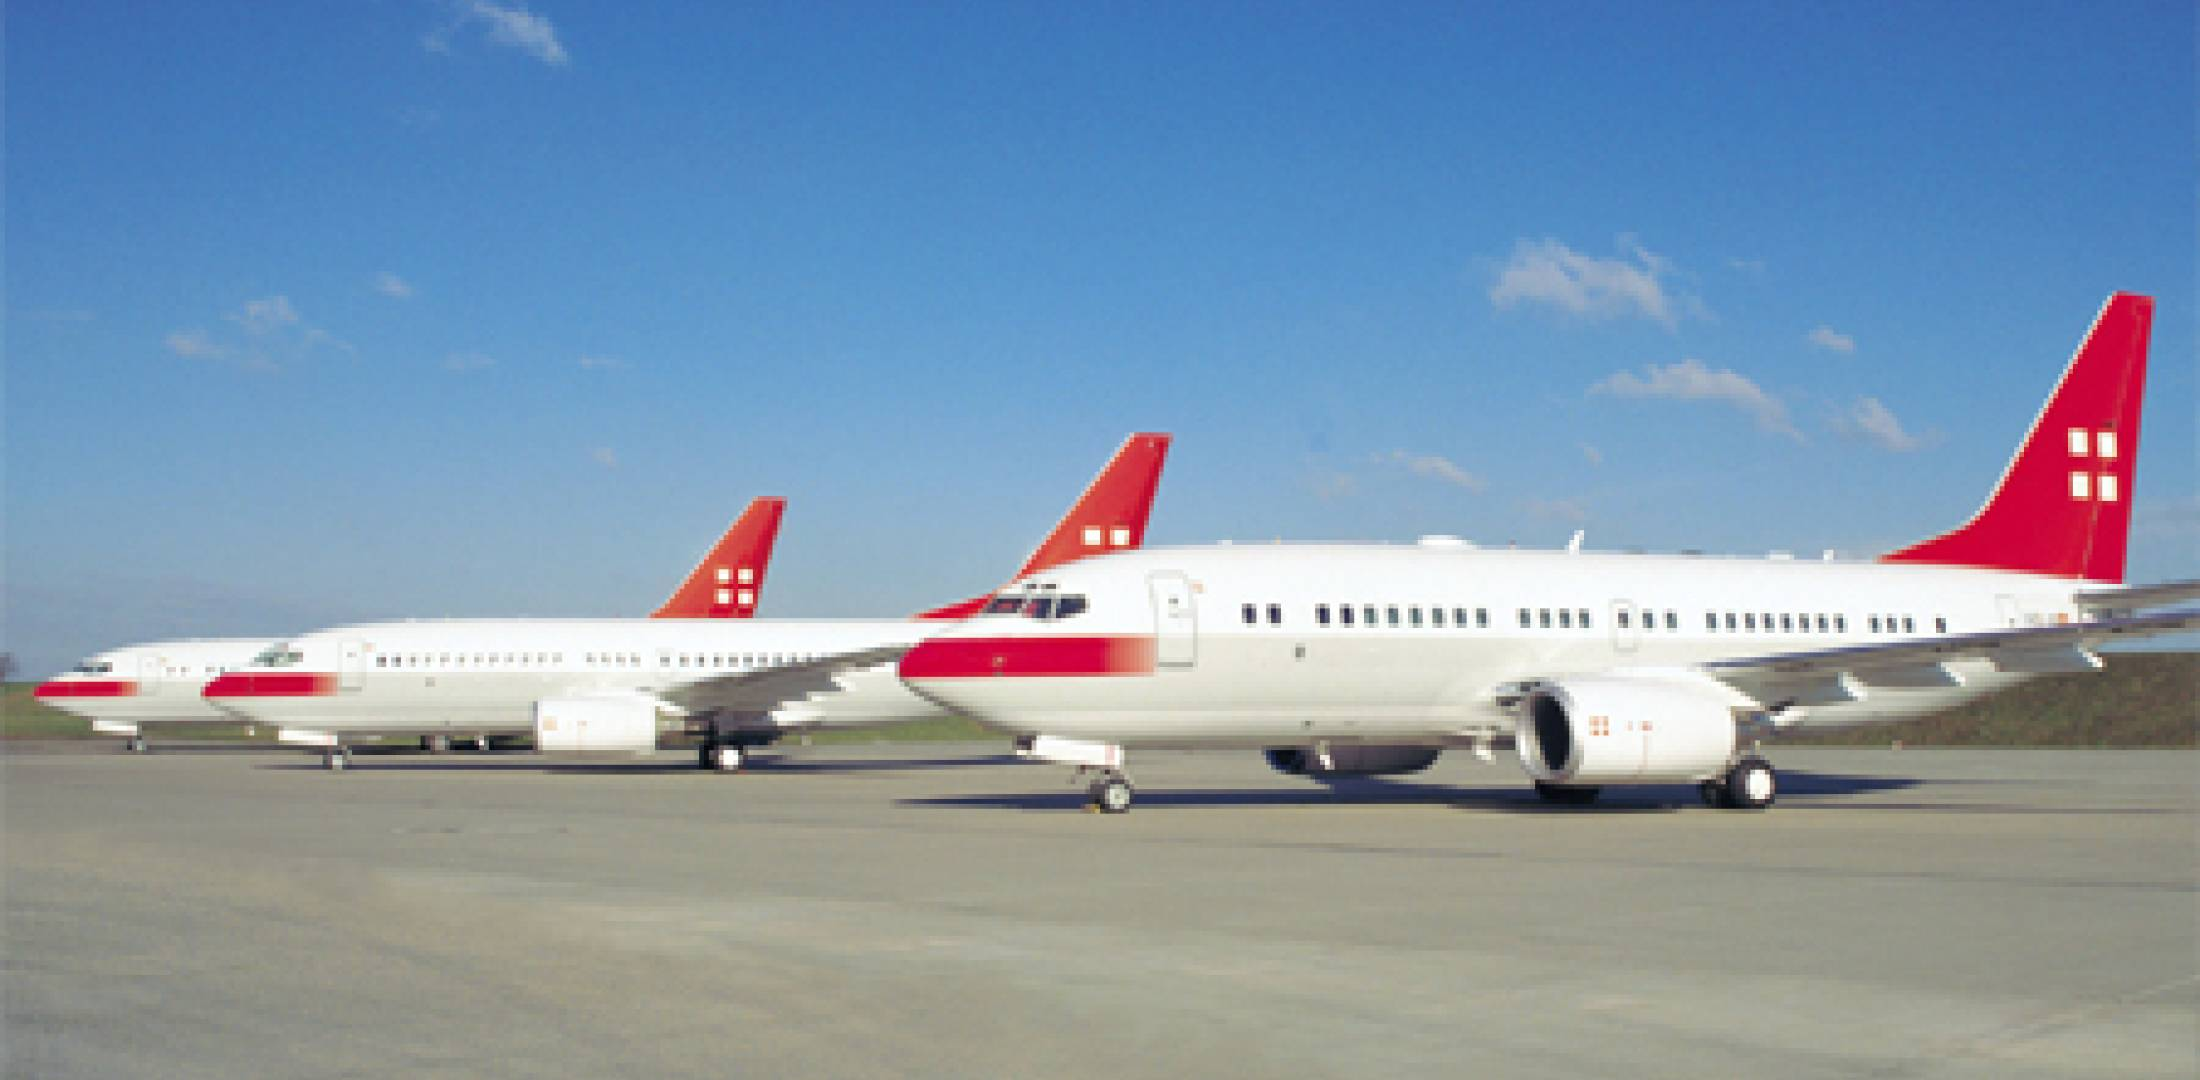 PrivatAir operates and manages a range of aircraft.